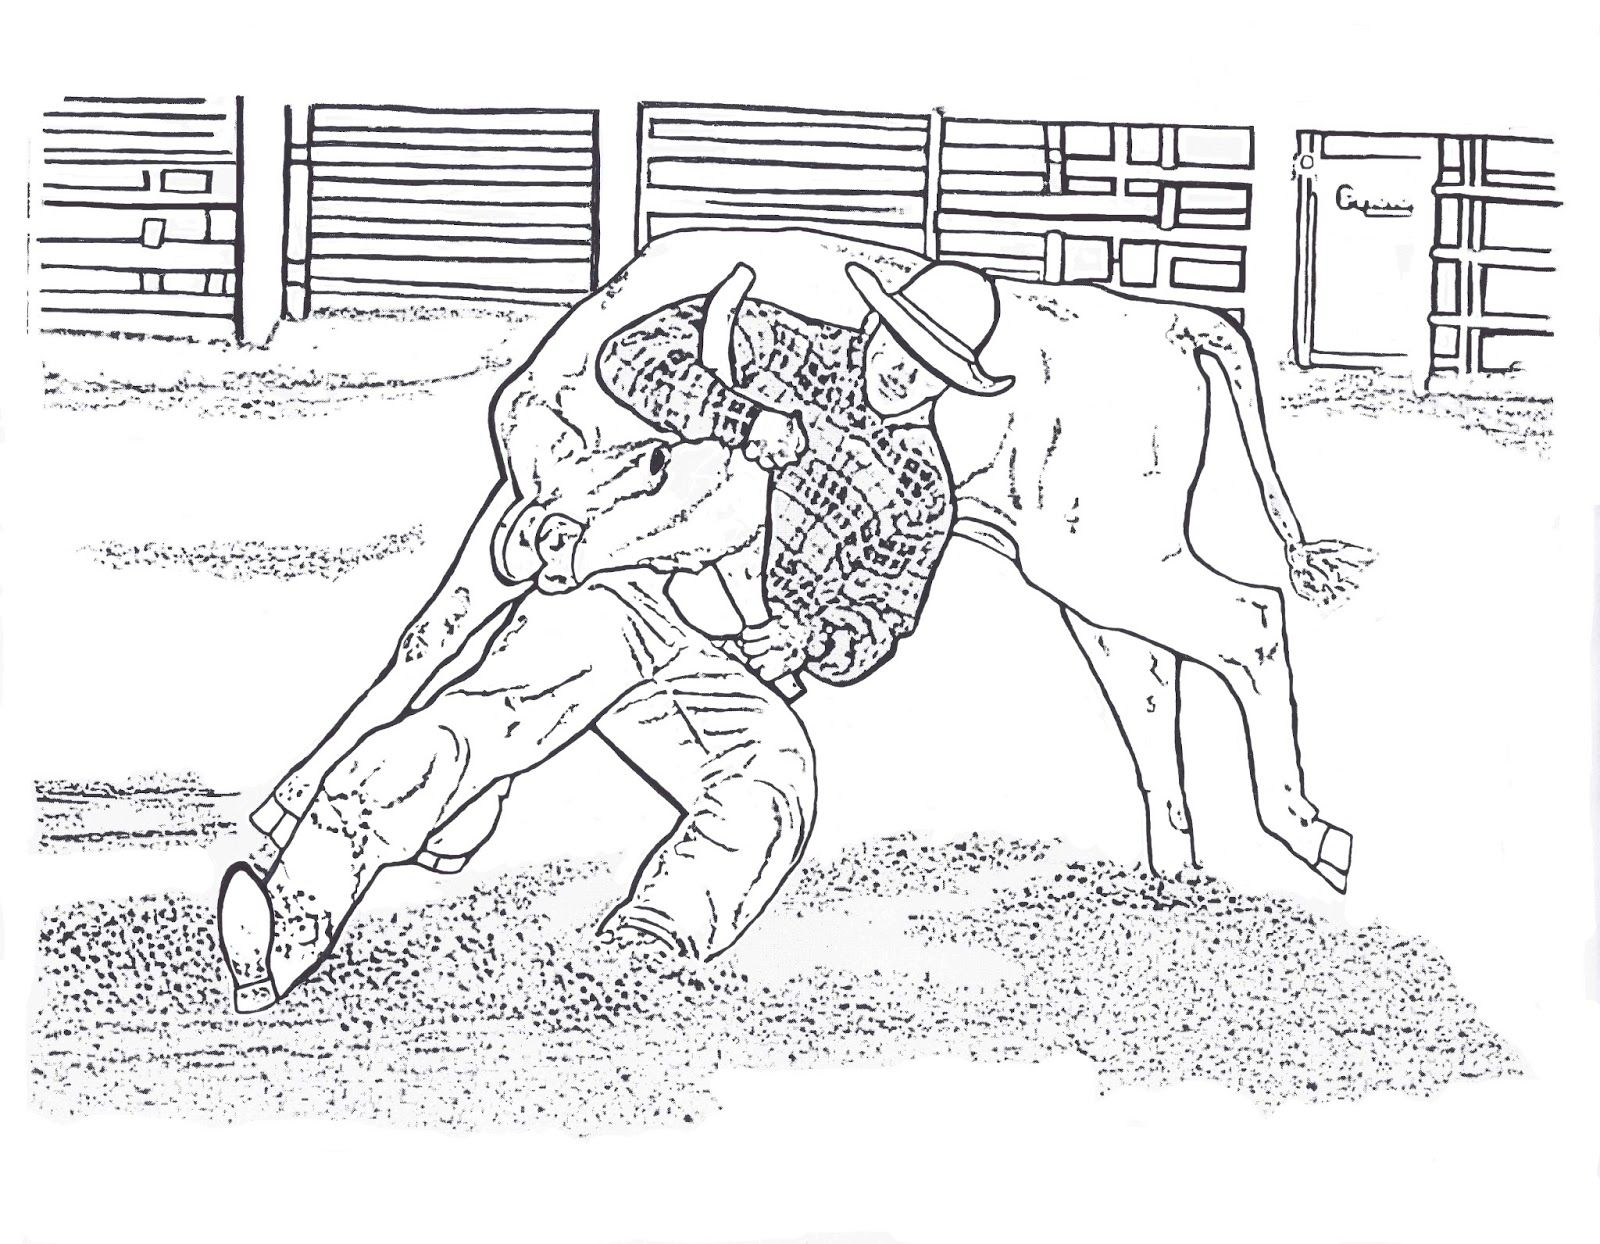 Rodeo Horse Coloring Pages | VBS Ideas | Pinterest | Rodeo, Precious ...